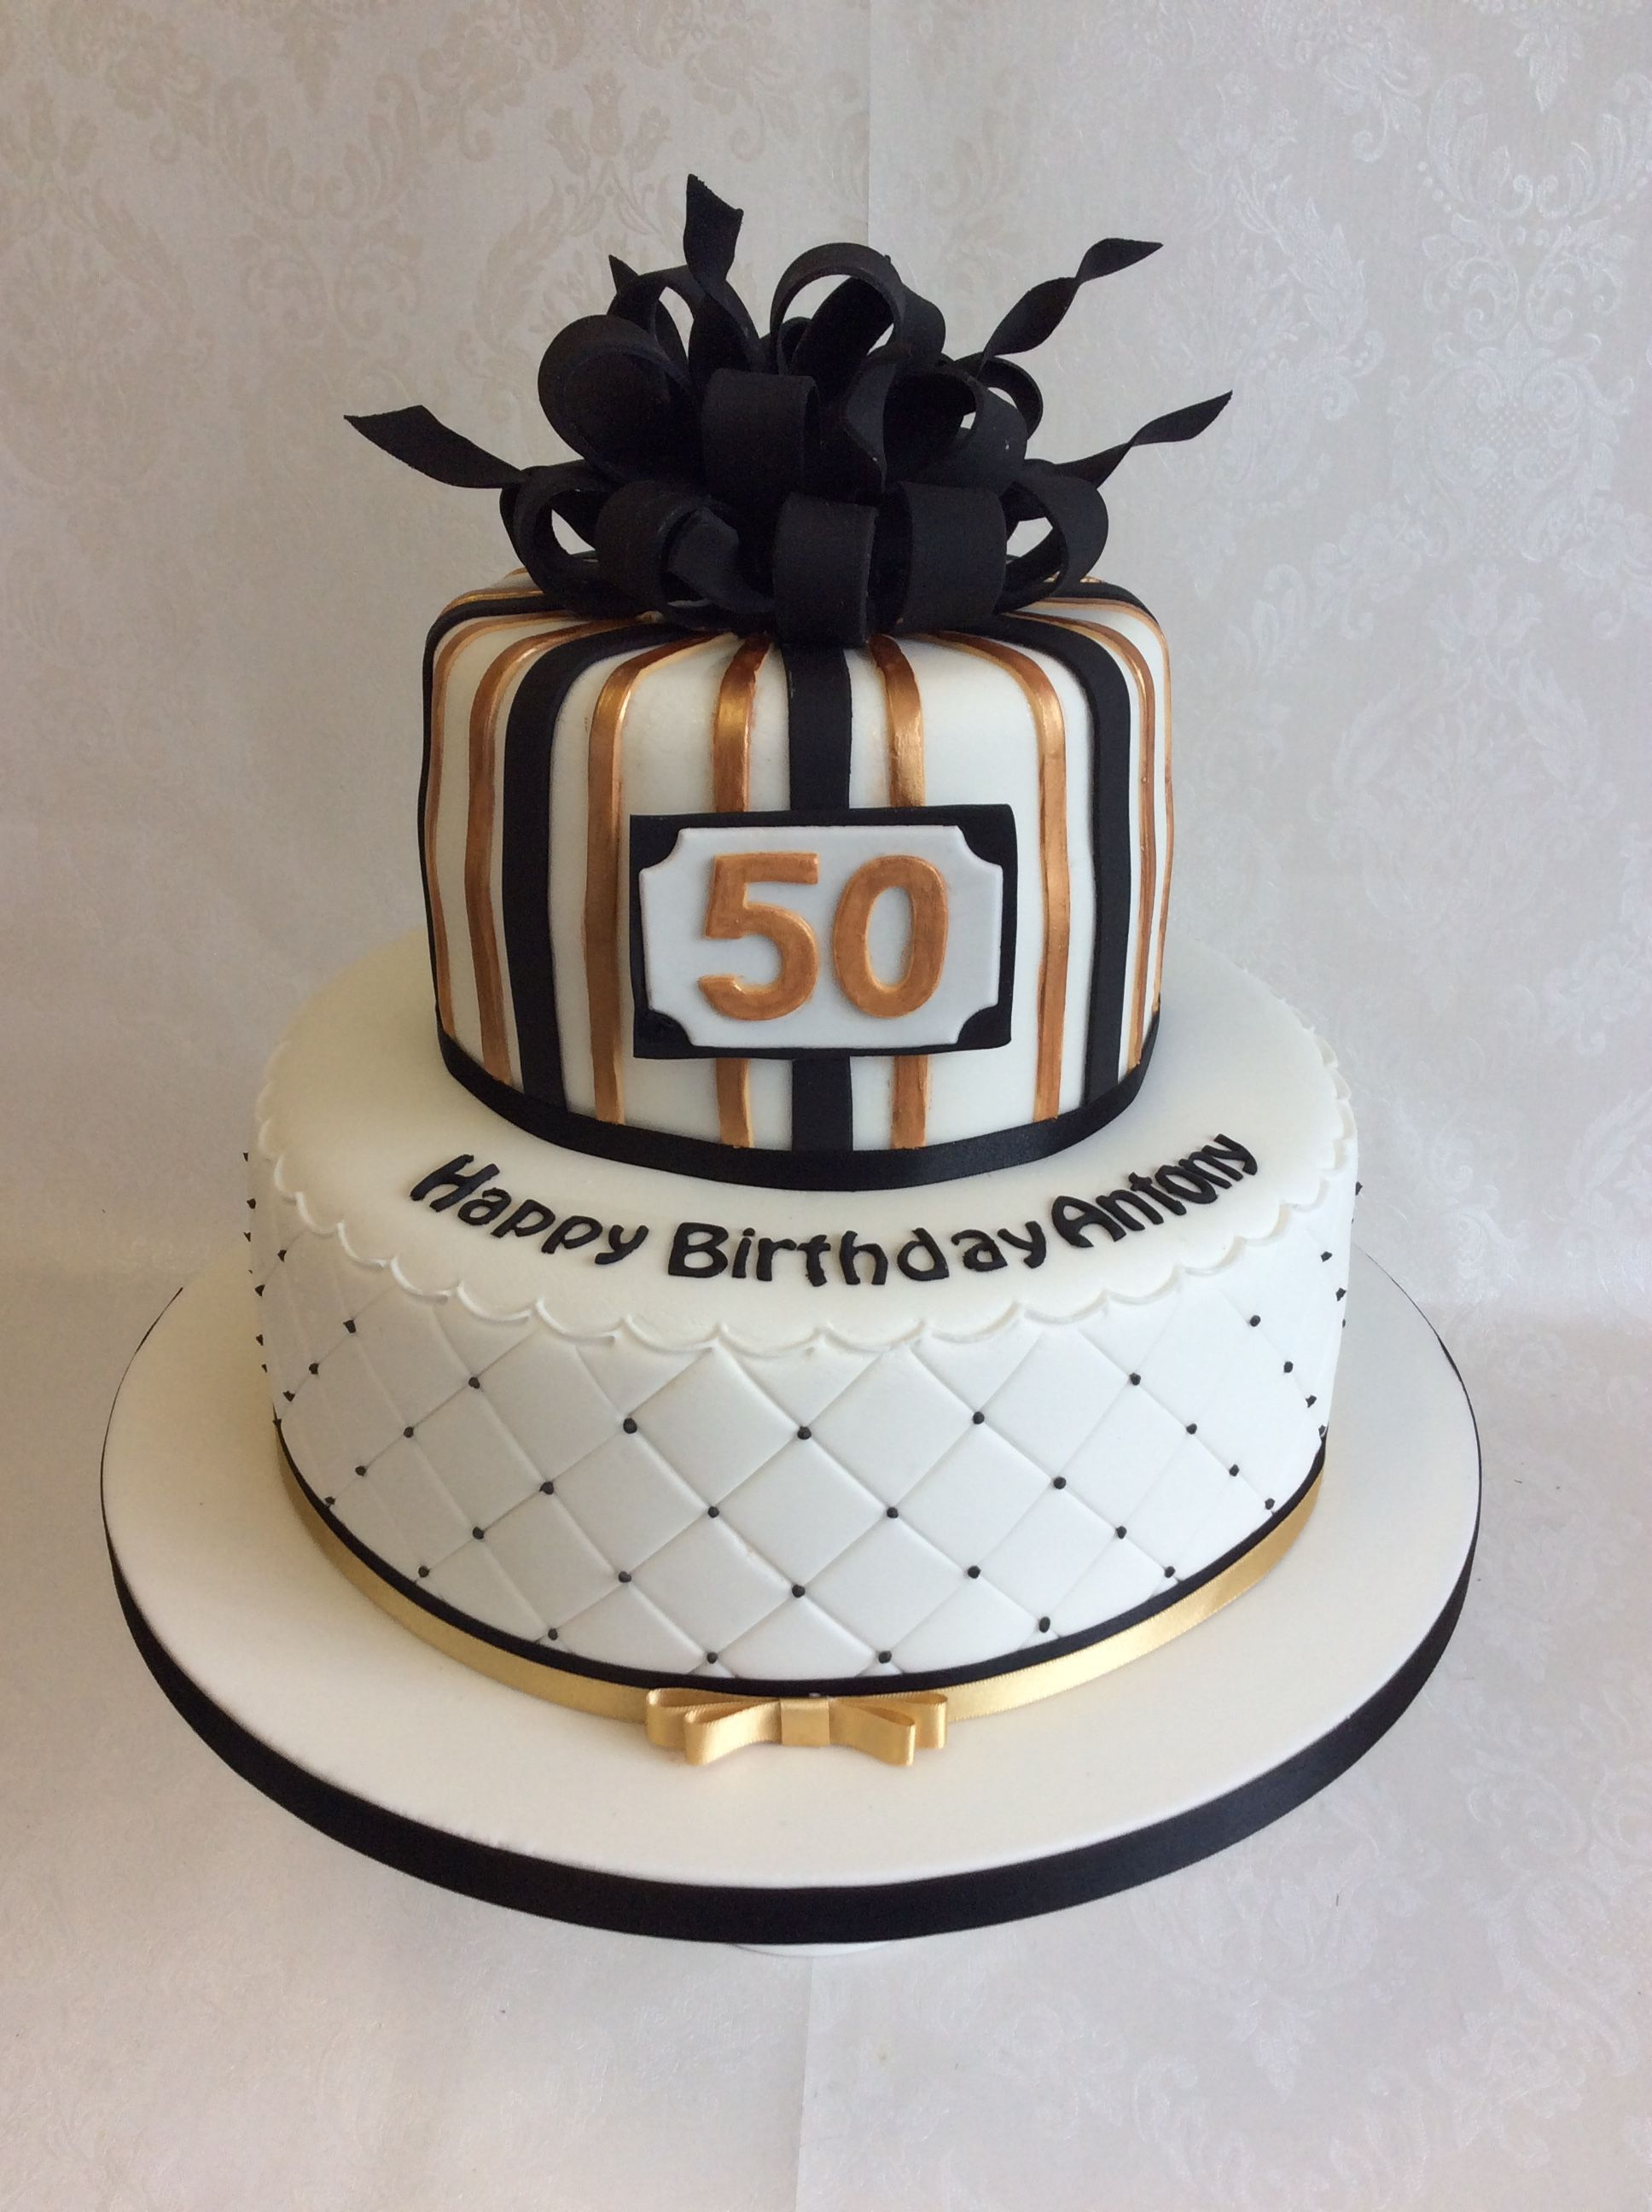 Two Tier Birthday Cake Parcel Style Top Tier For This 2 Tier Black And Gold Themed Birthday